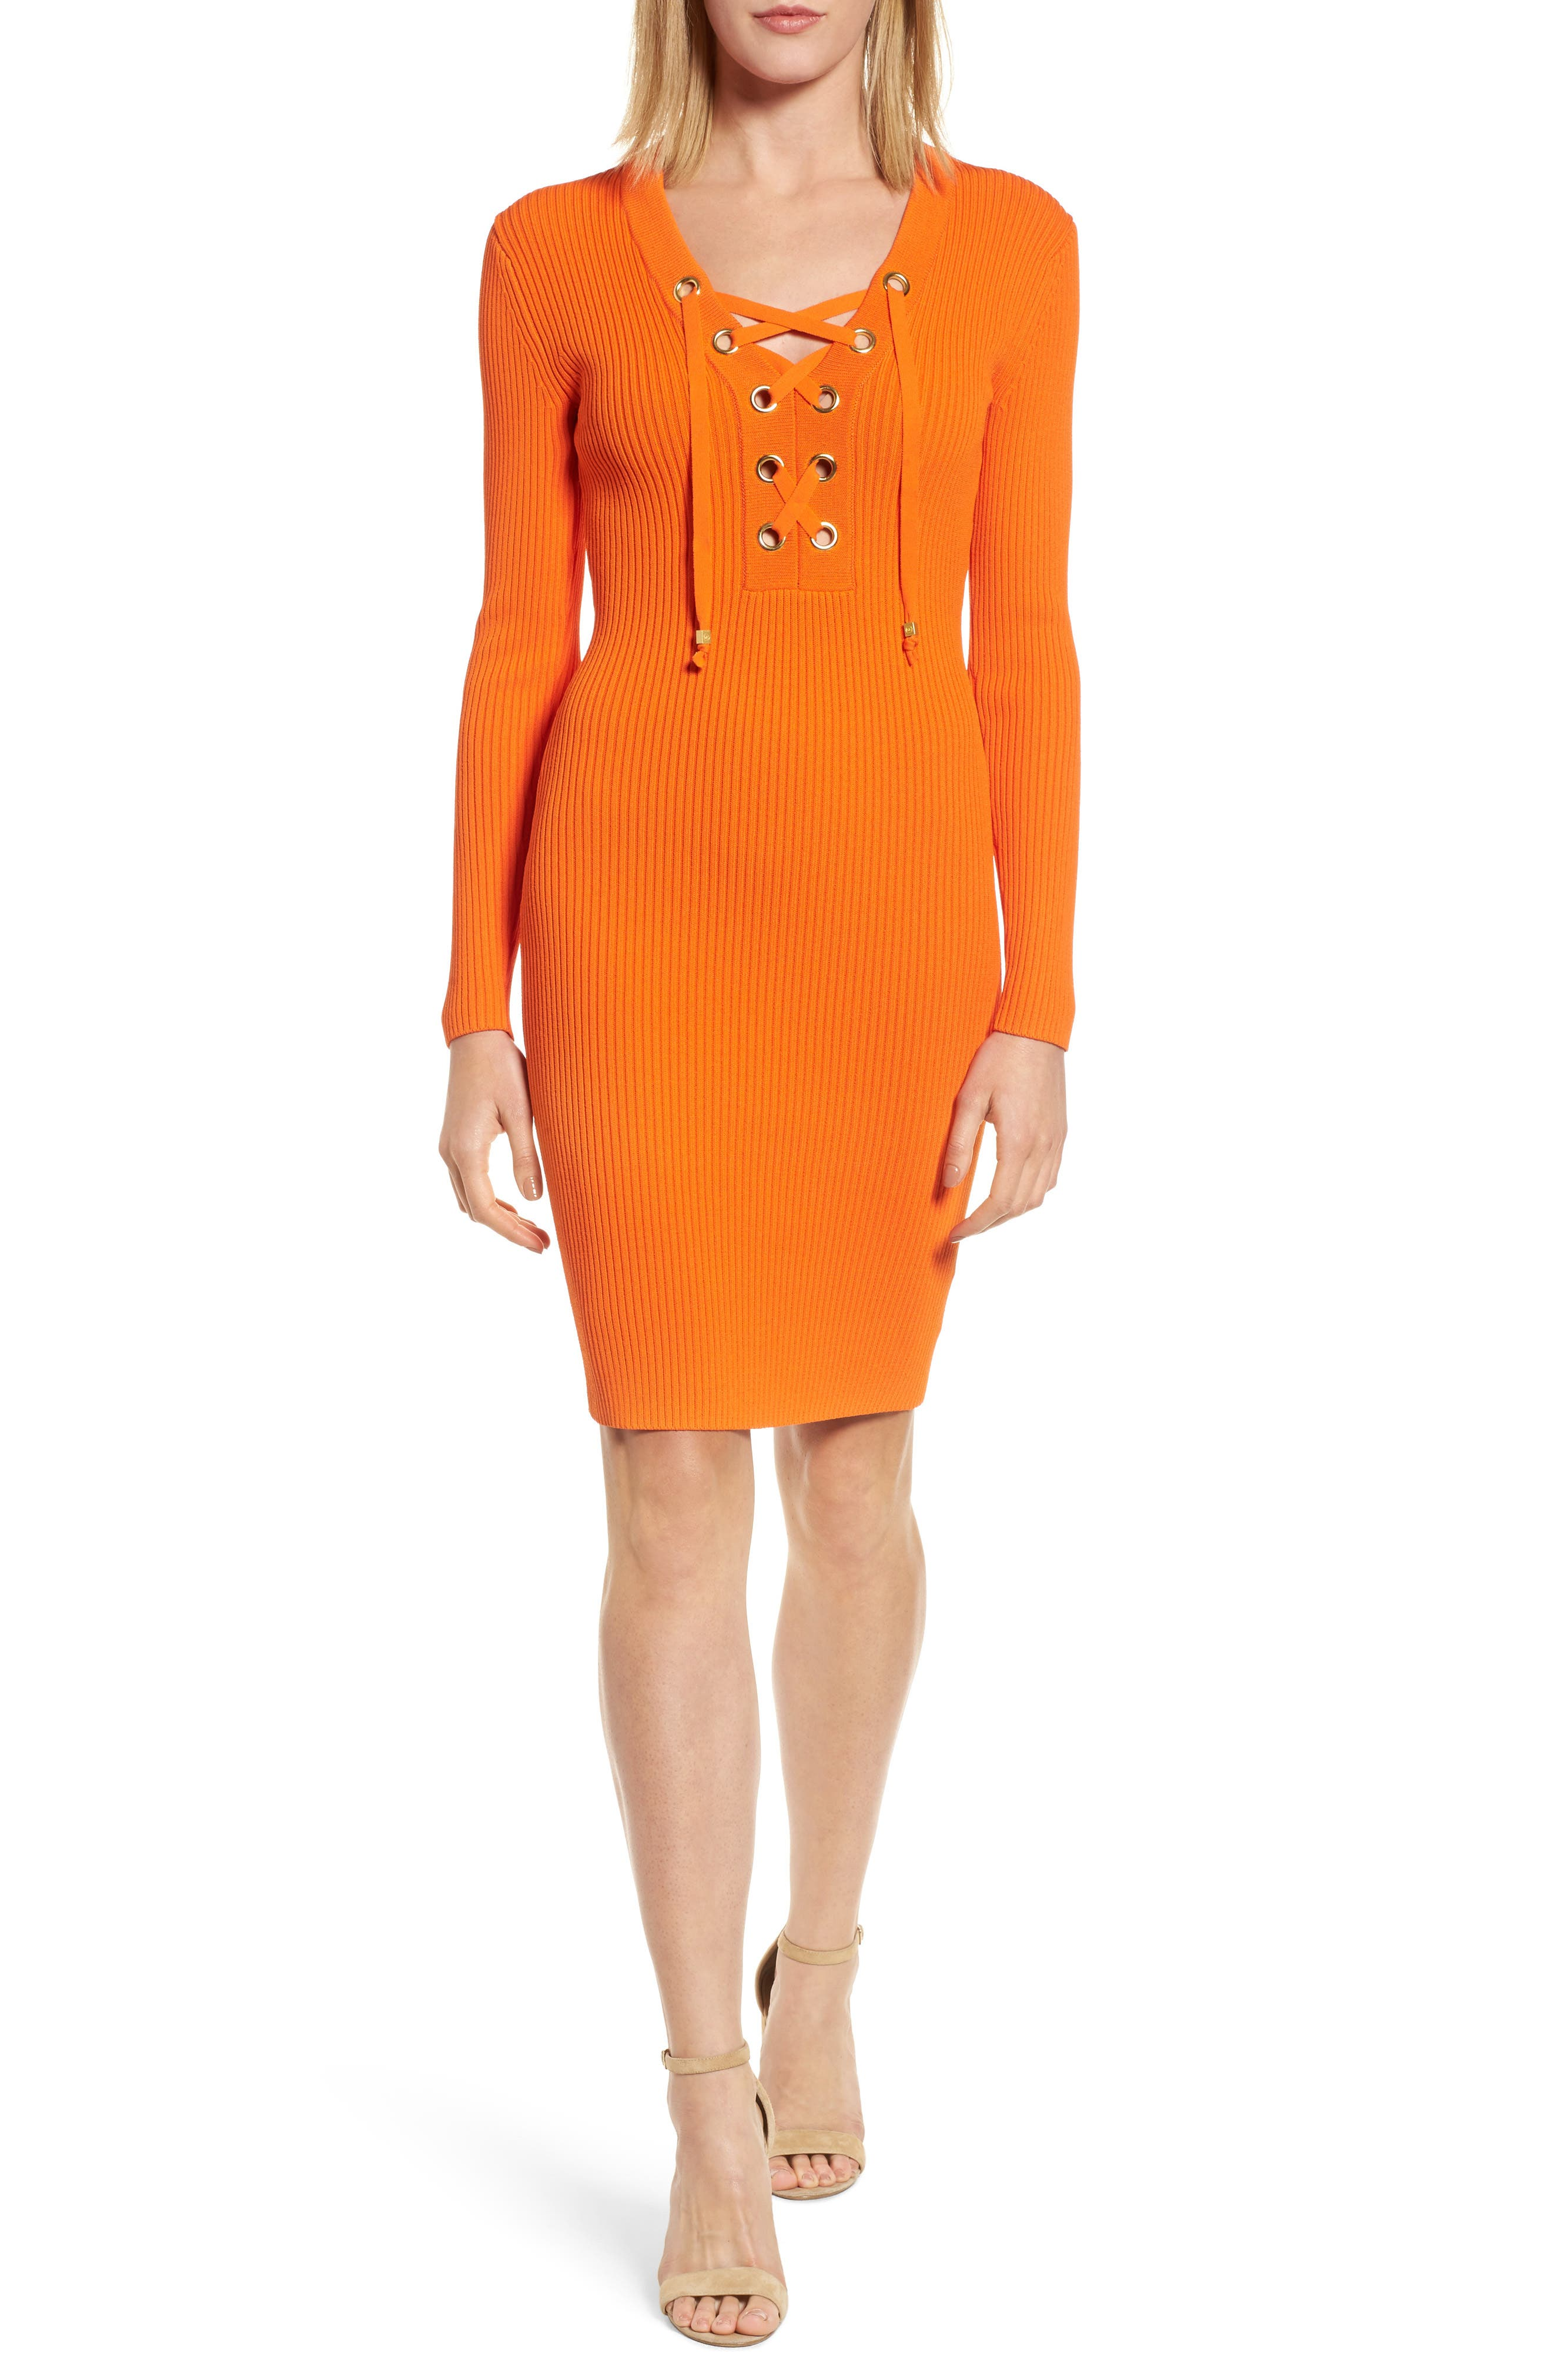 Alternate Image 1 Selected - MICHAEL Michael Kors Lace-Up Ribbed Dress